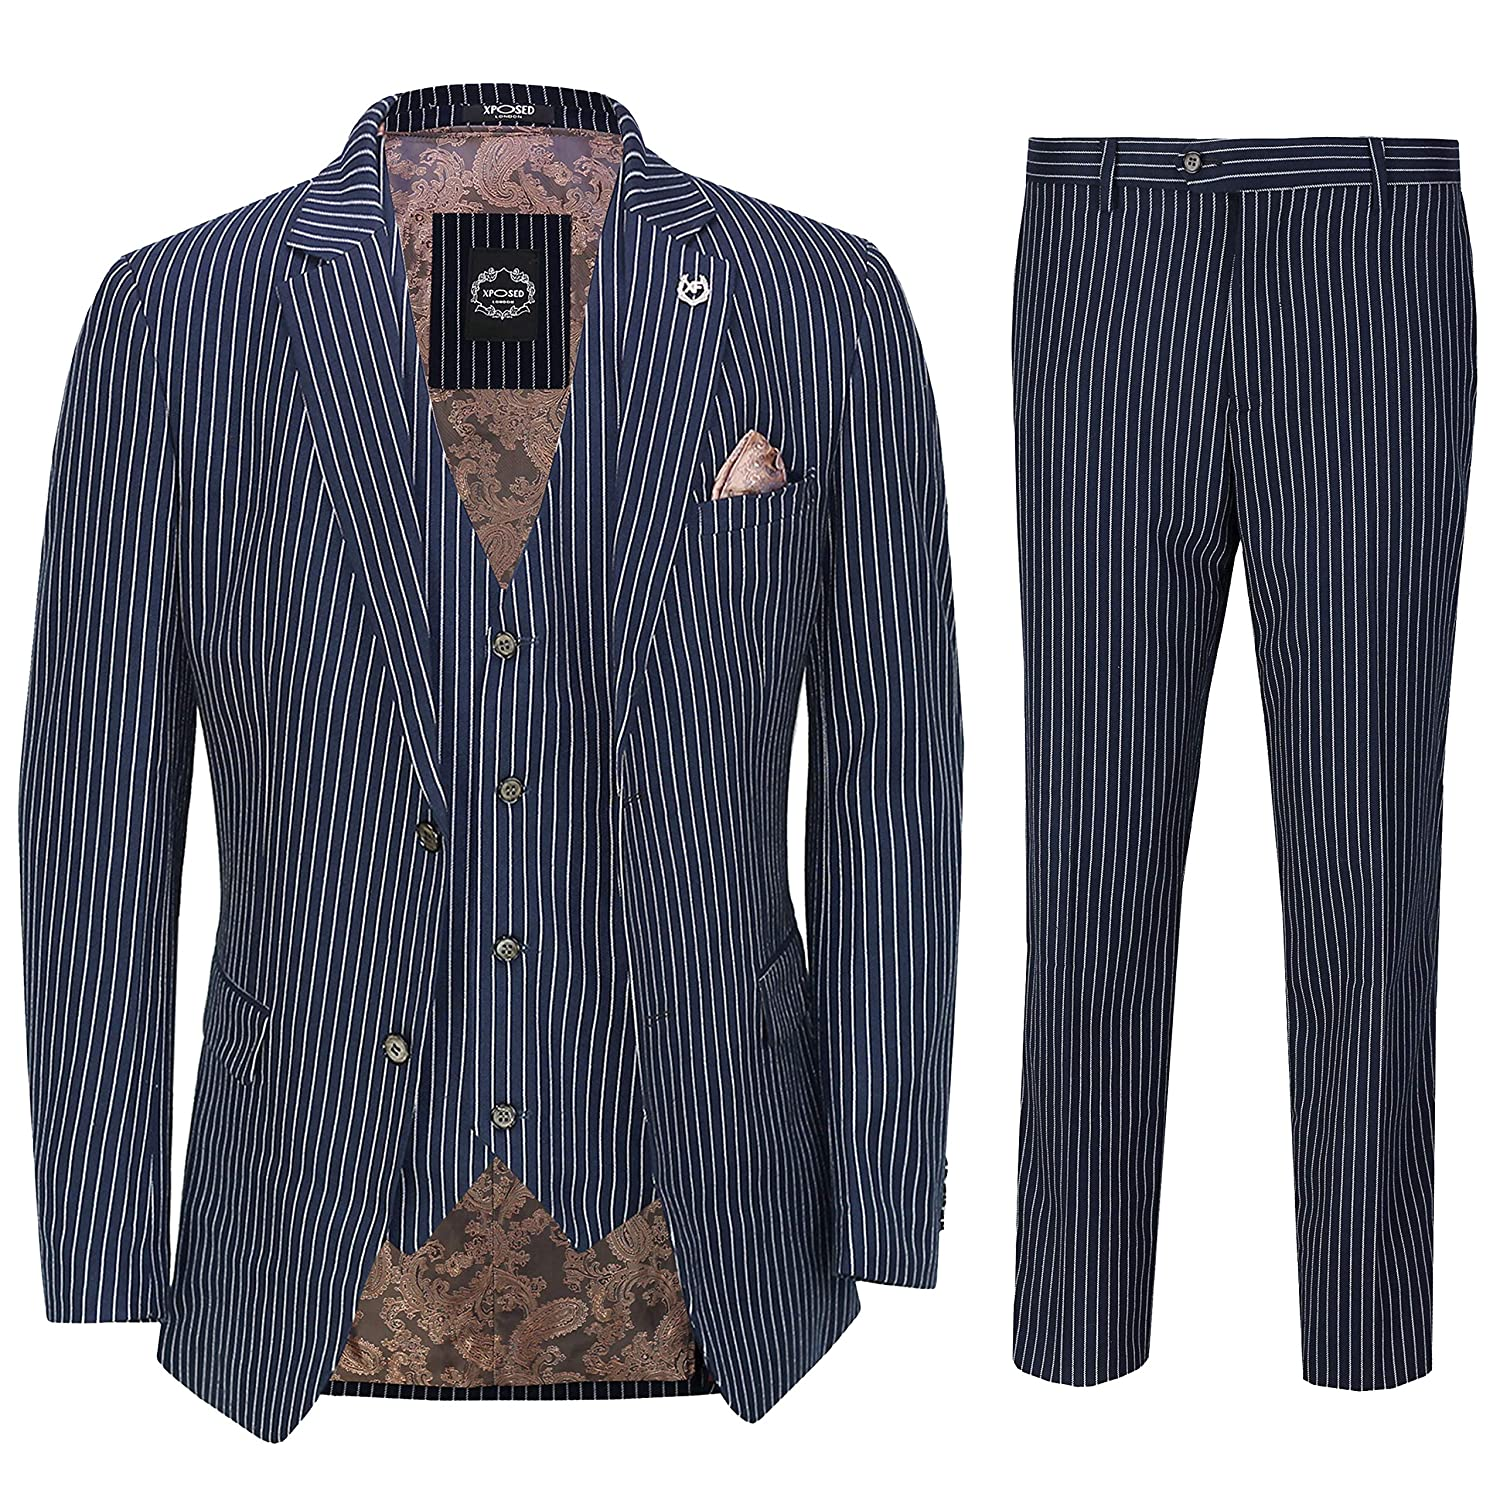 Retro Clothing for Men | Vintage Men's Fashion Xposed Mens Navy Blue 3 Piece Chalk Pinstripe Suit Classic Vintage Tailored Fit 1920s Peaky £104.99 AT vintagedancer.com